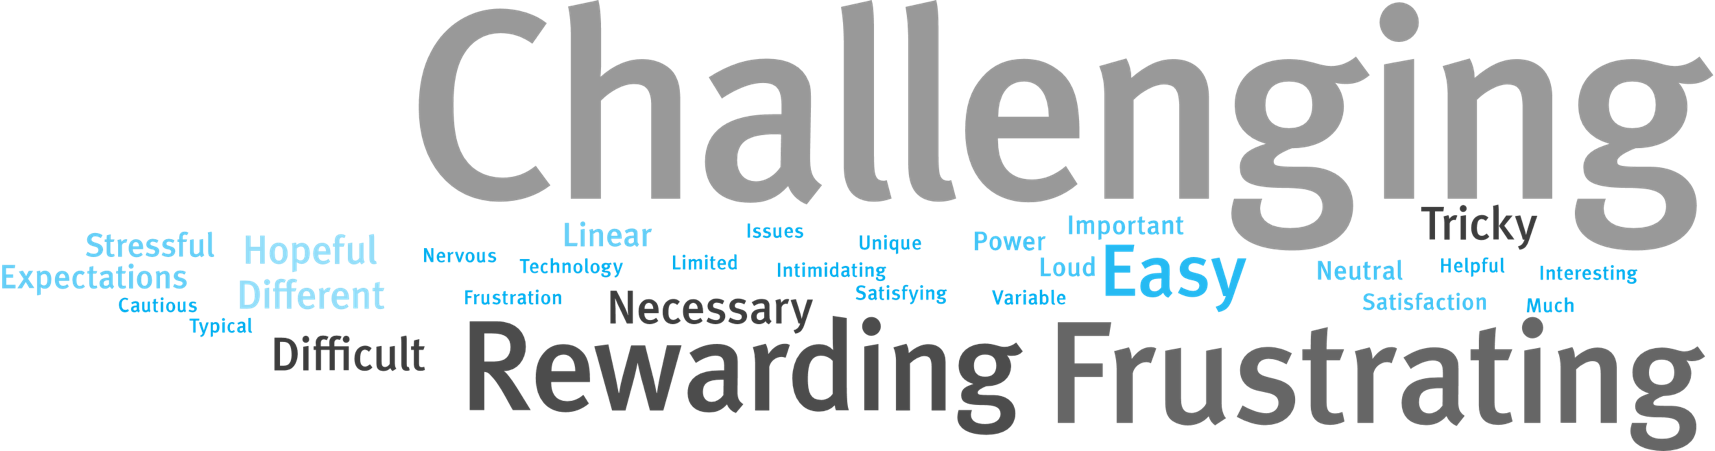 Word cloud representing hearing care professional opinions on Super Power fittings